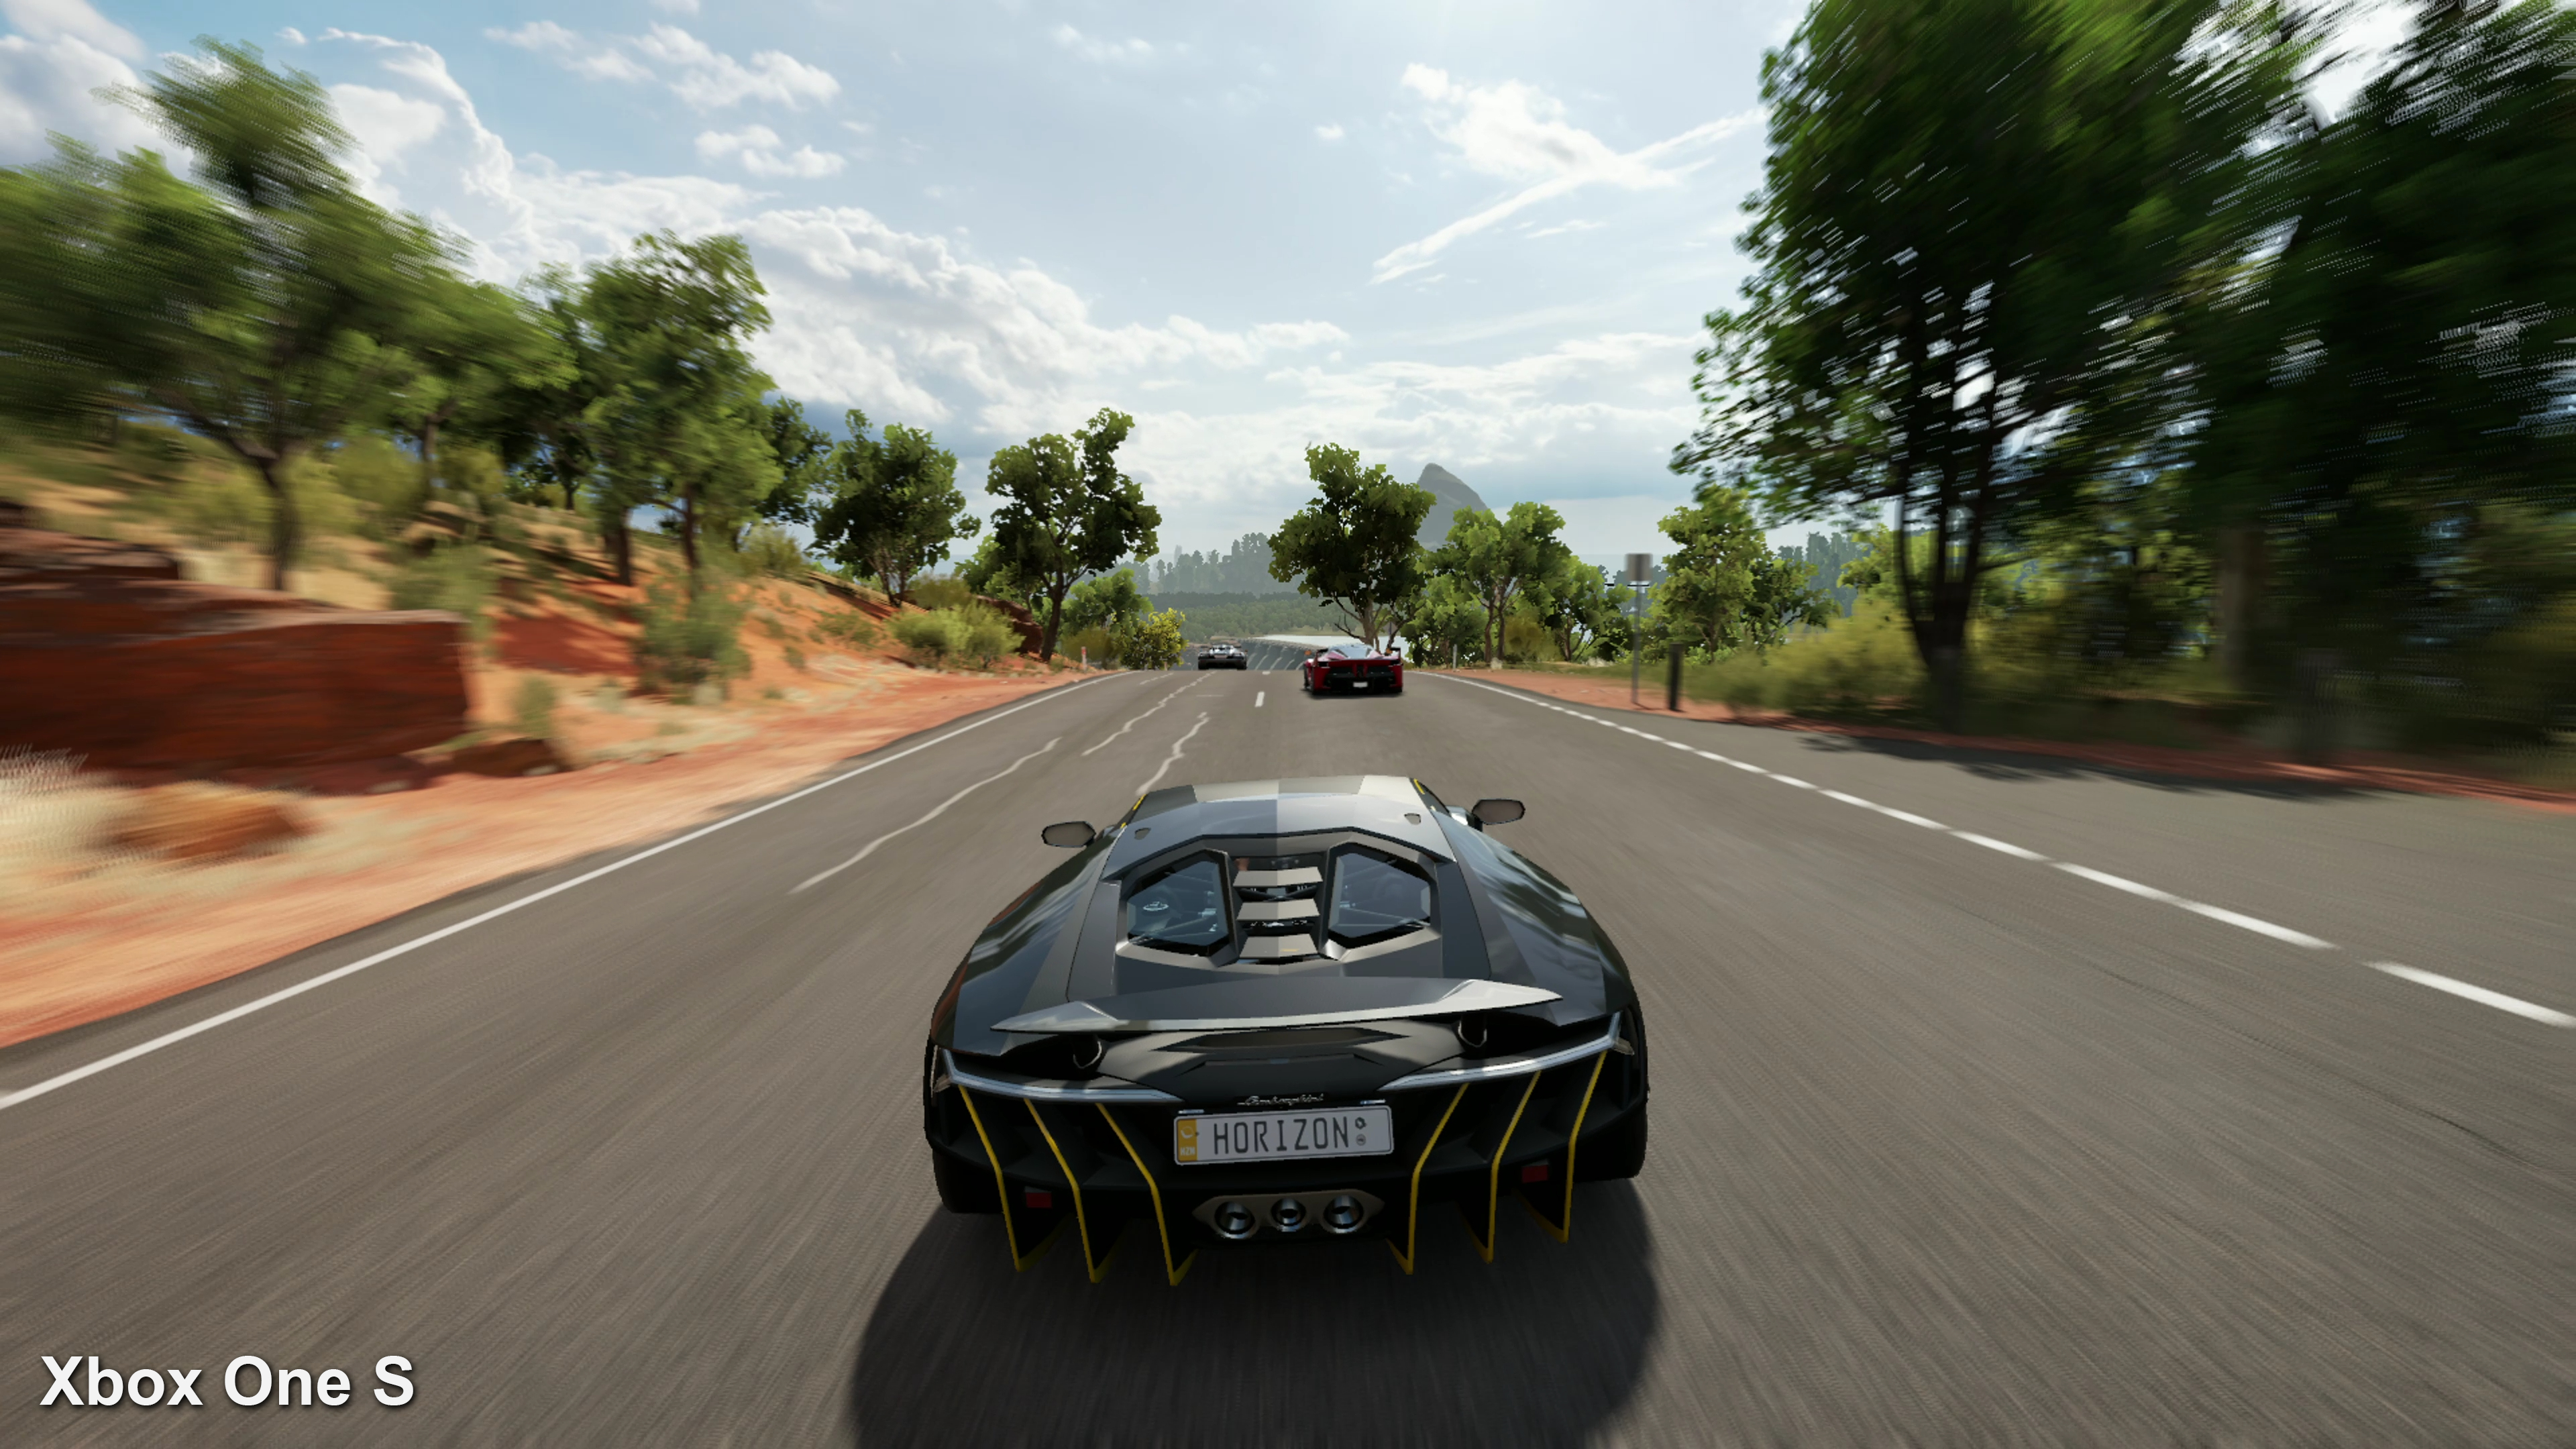 Forza Horizon 3 at 4K 60fps is simply breathtaking